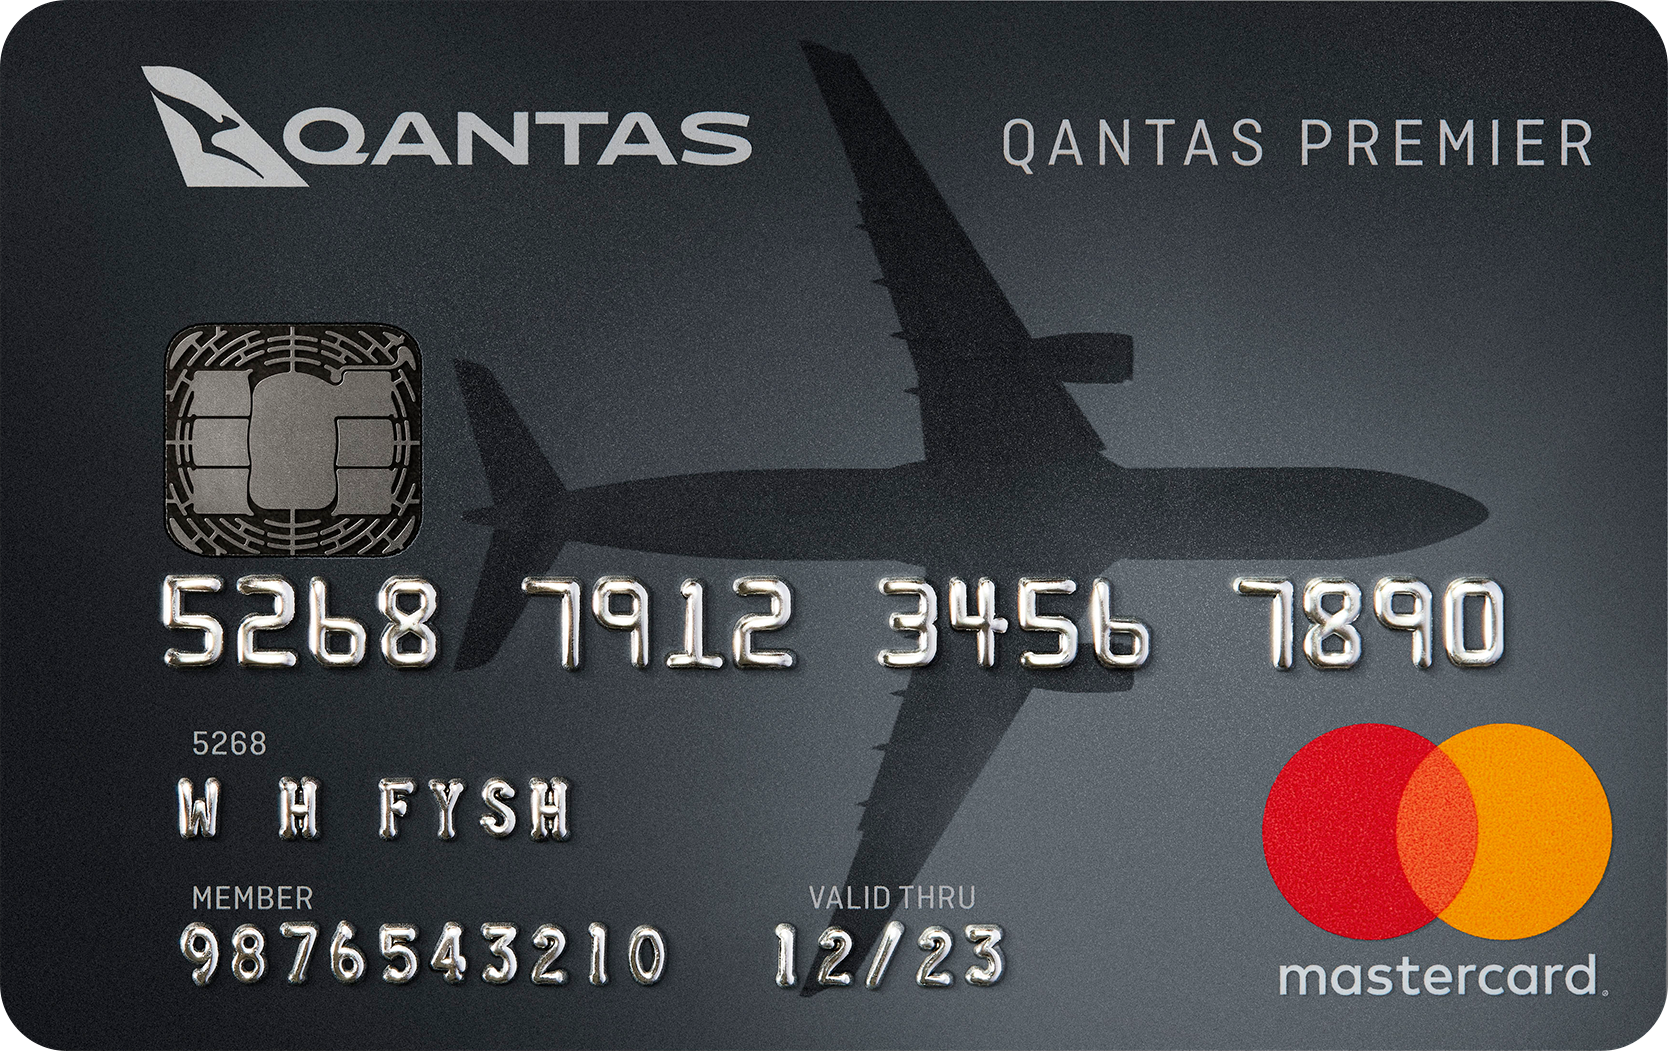 qantas american express discovery card review